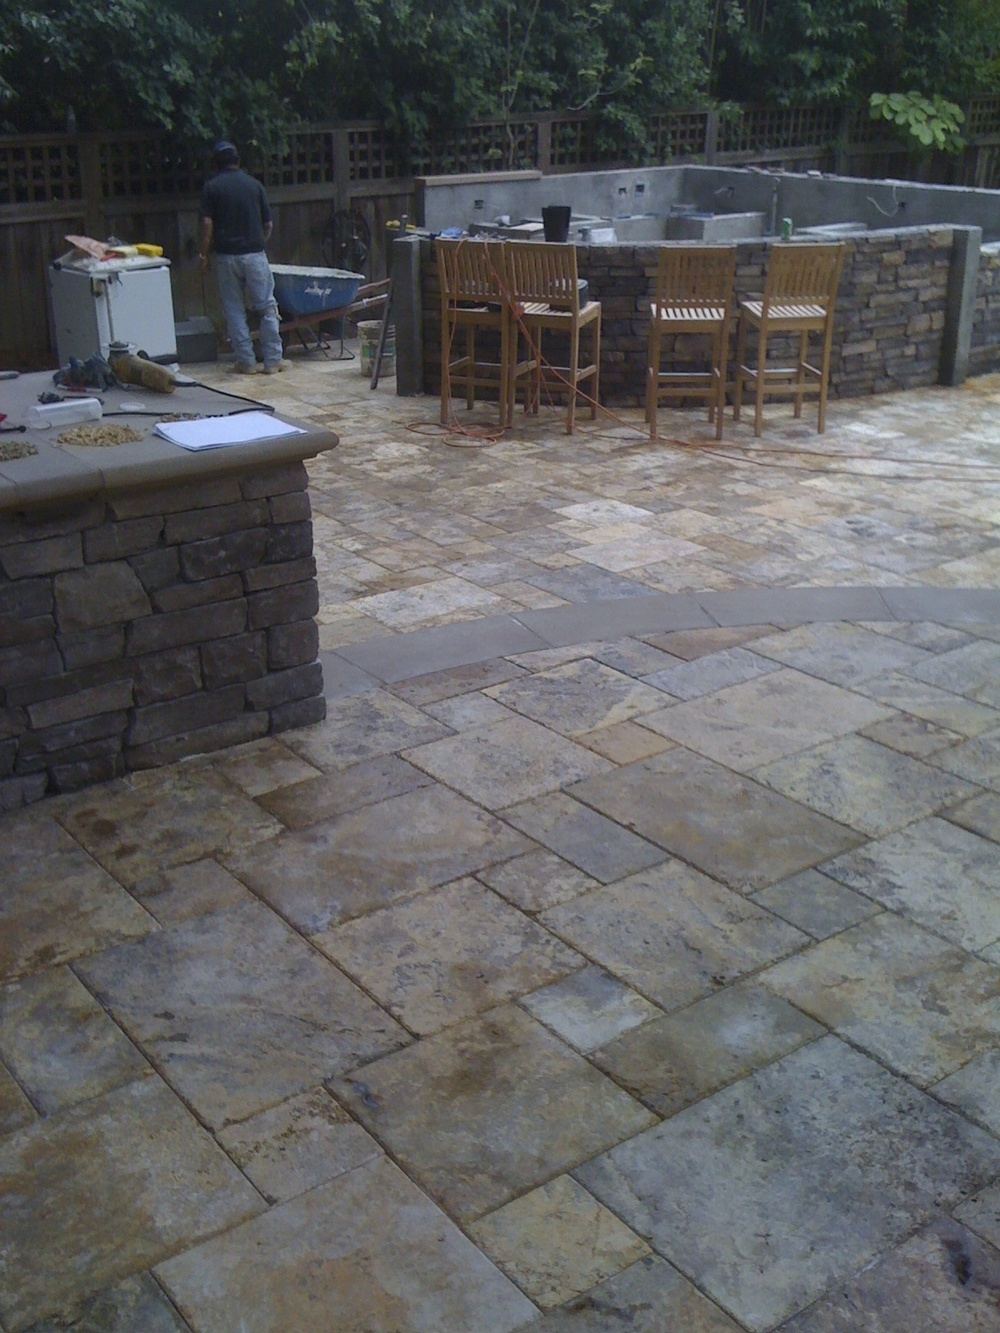 Travertine Stone Patio and Outdoor Kitchen